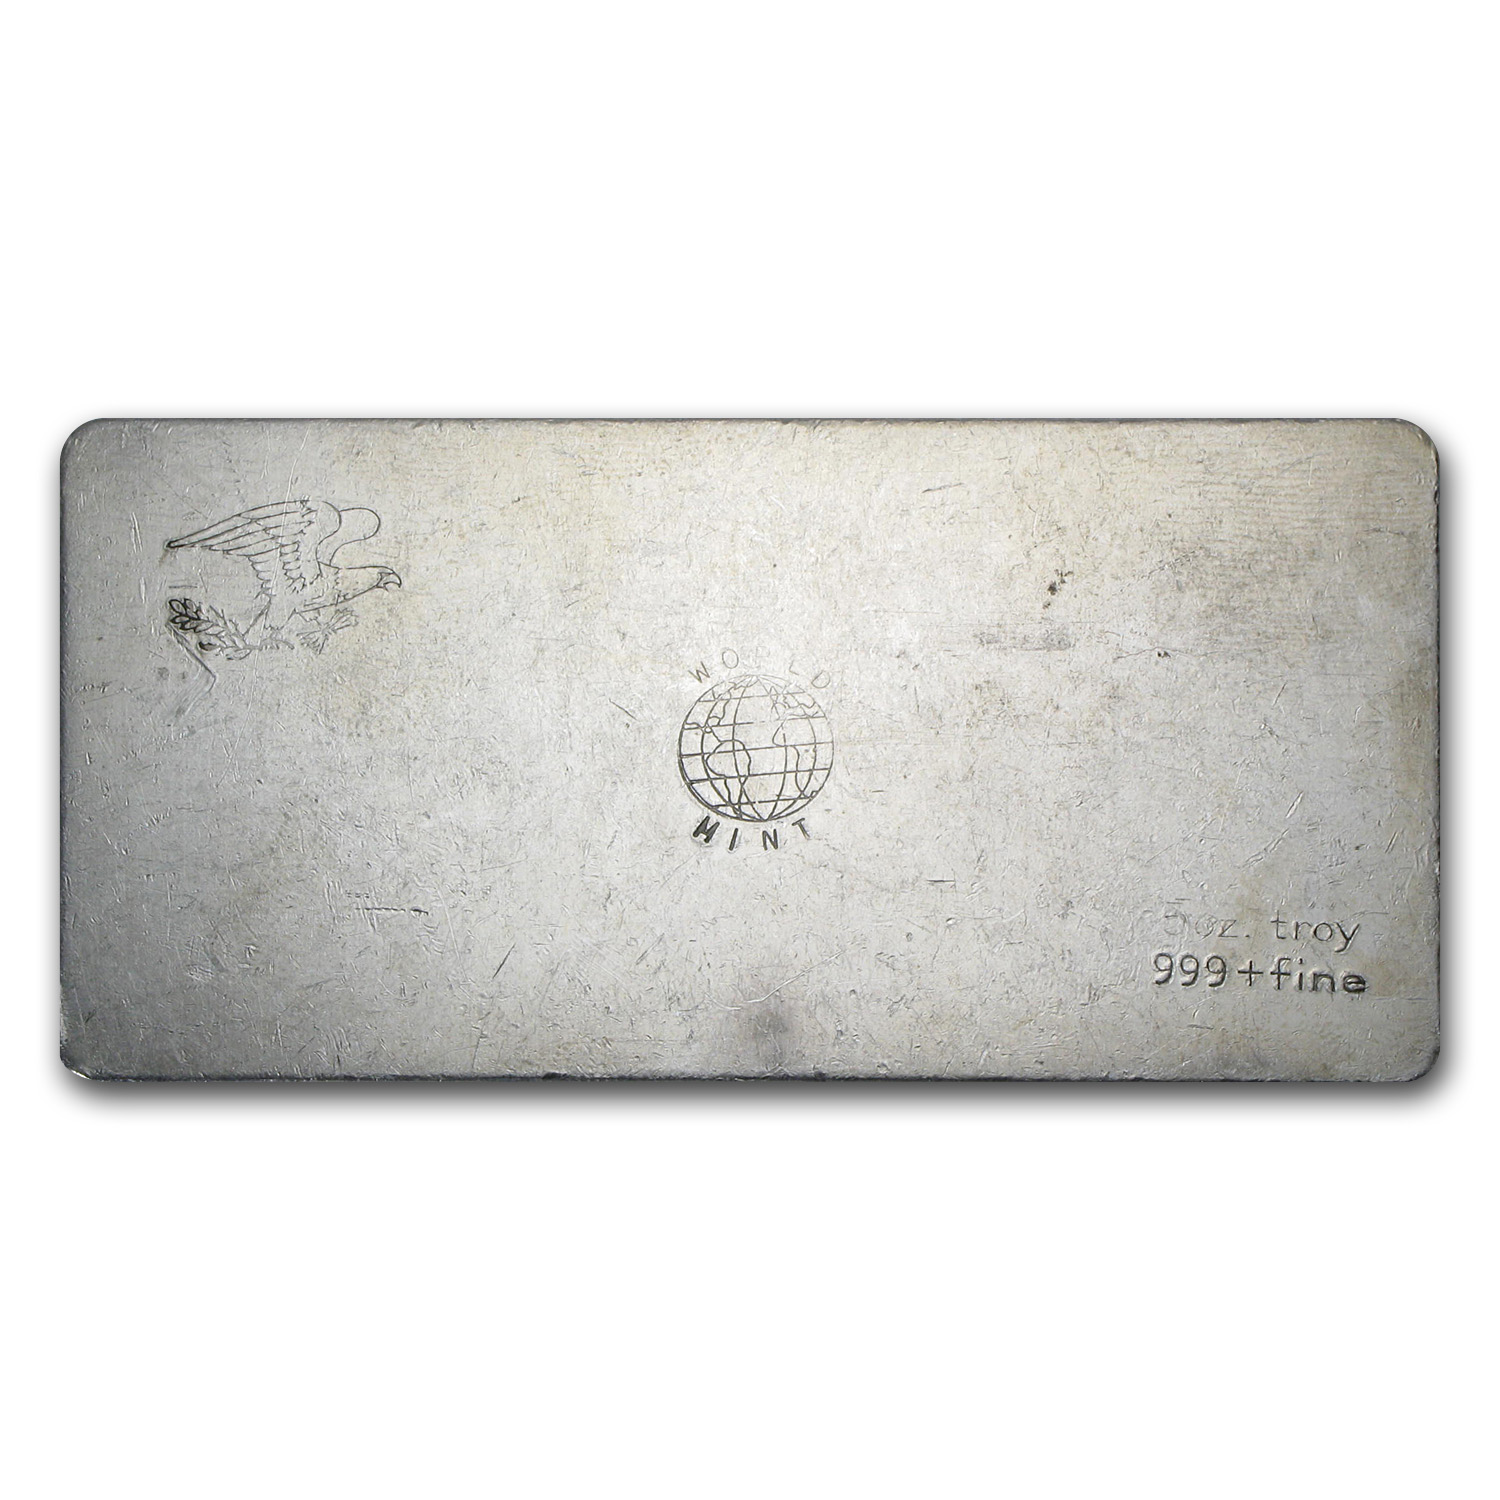 5 oz Silver Bar - World Mint Ignot